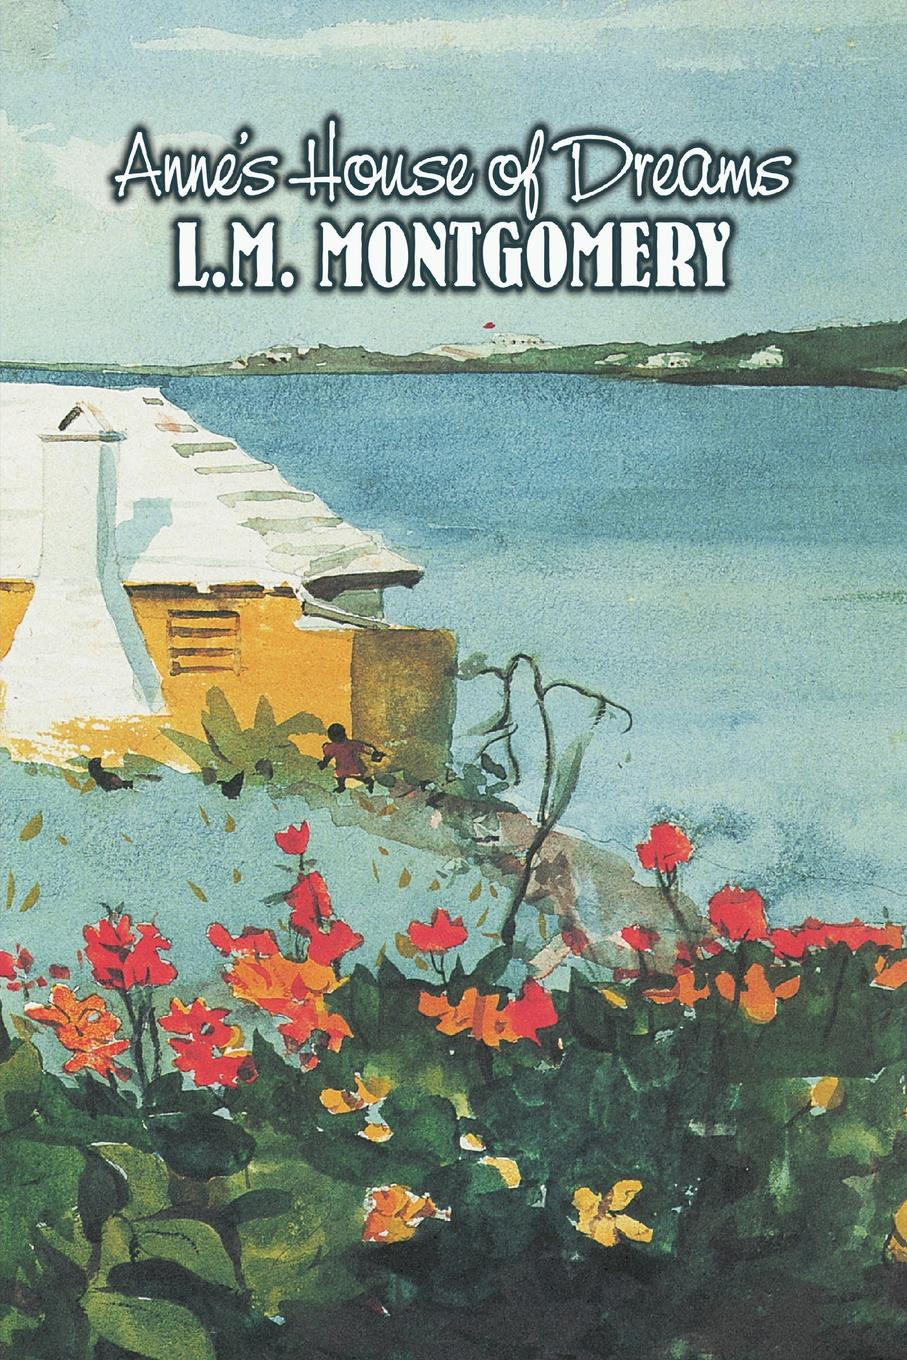 L. M. Montgomery Anne's House of Dreams by L. M. Montgomery, Fiction, Classics, Family недорого